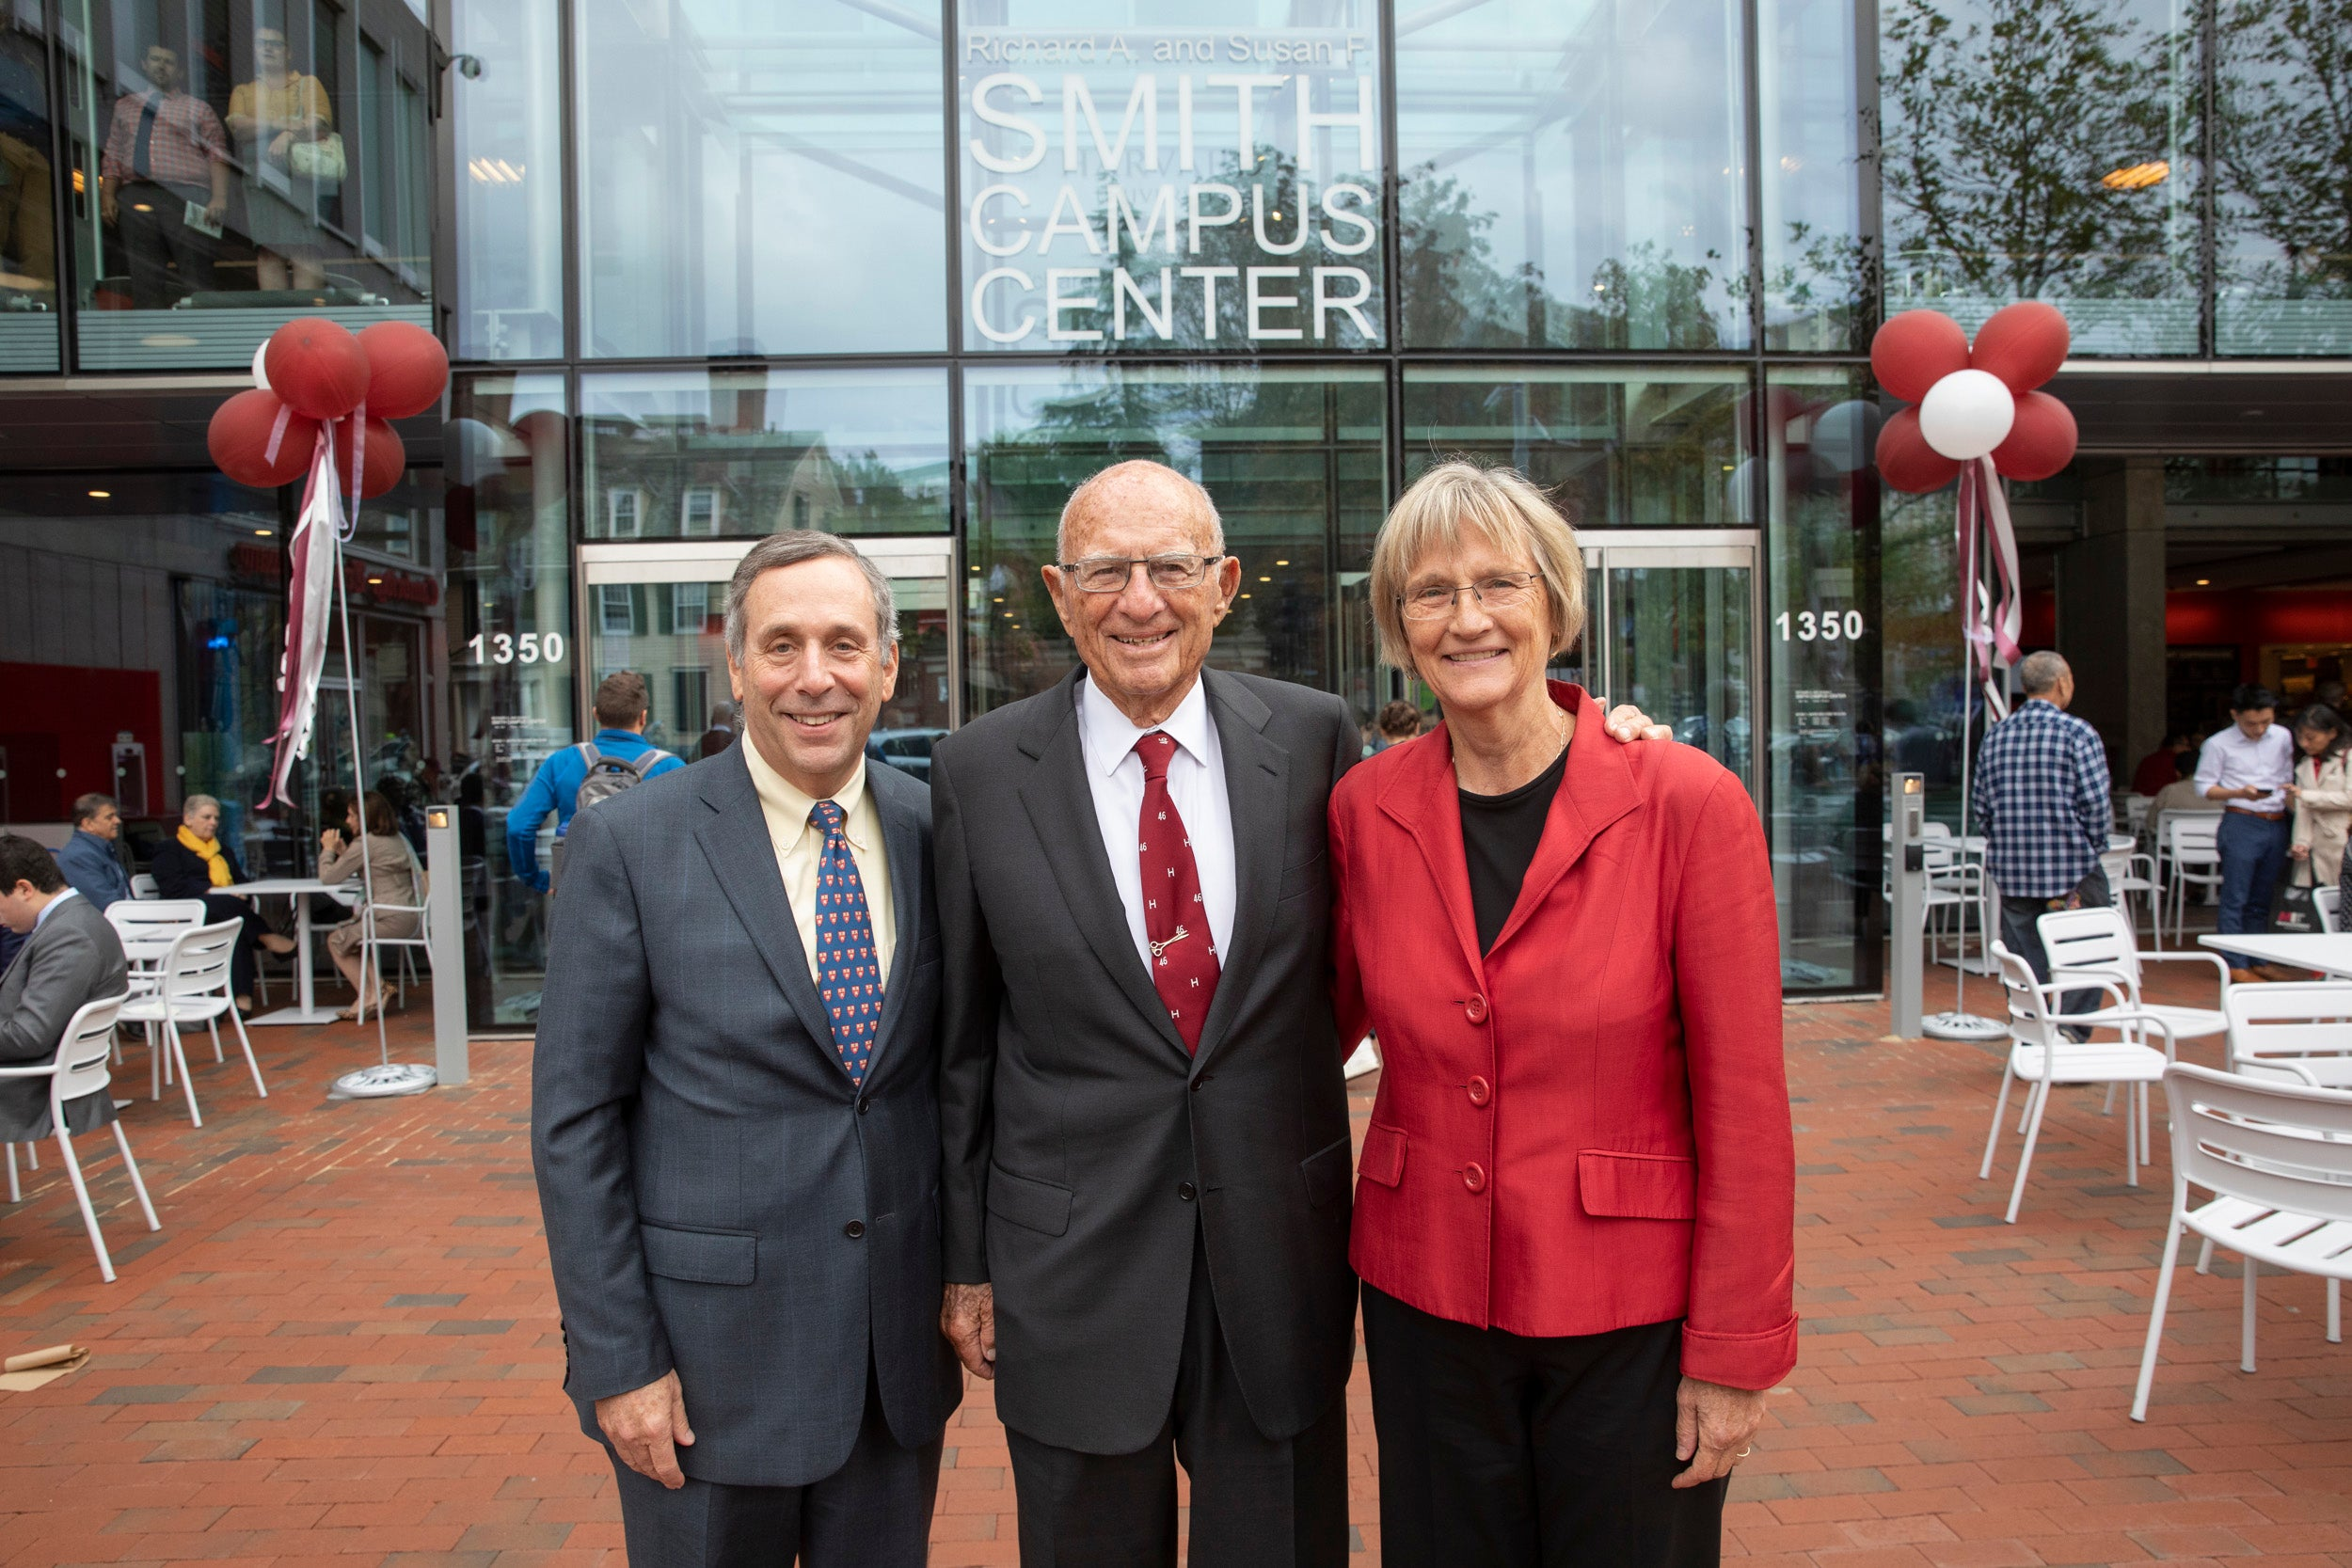 Larry Bacow, Richard A. Smith, and Drew Faust.